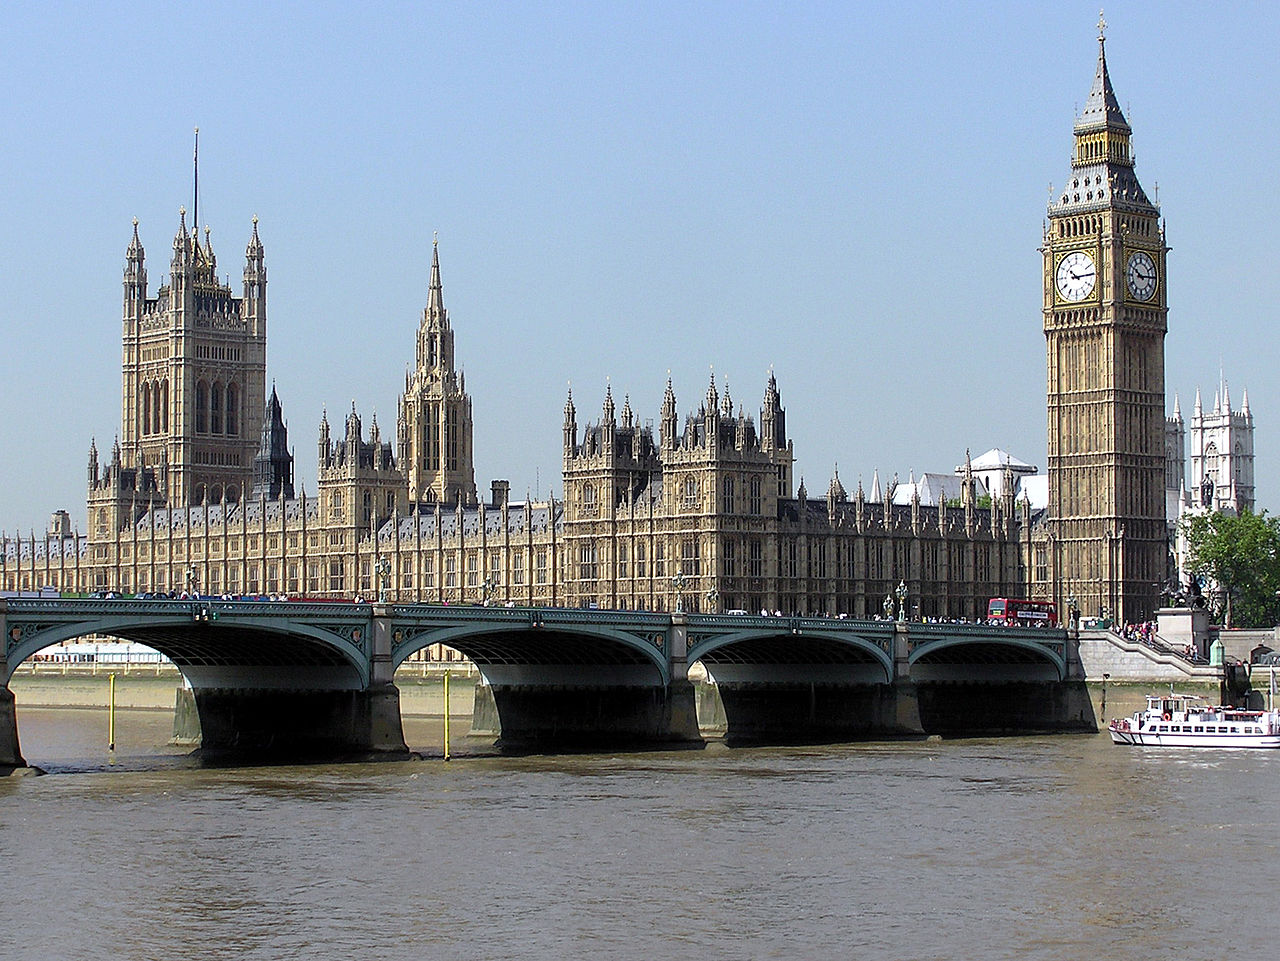 Business and political leaders will come together for a conclave at the UK PArliament in WEstminster. Photo courtesy: Wikimedia